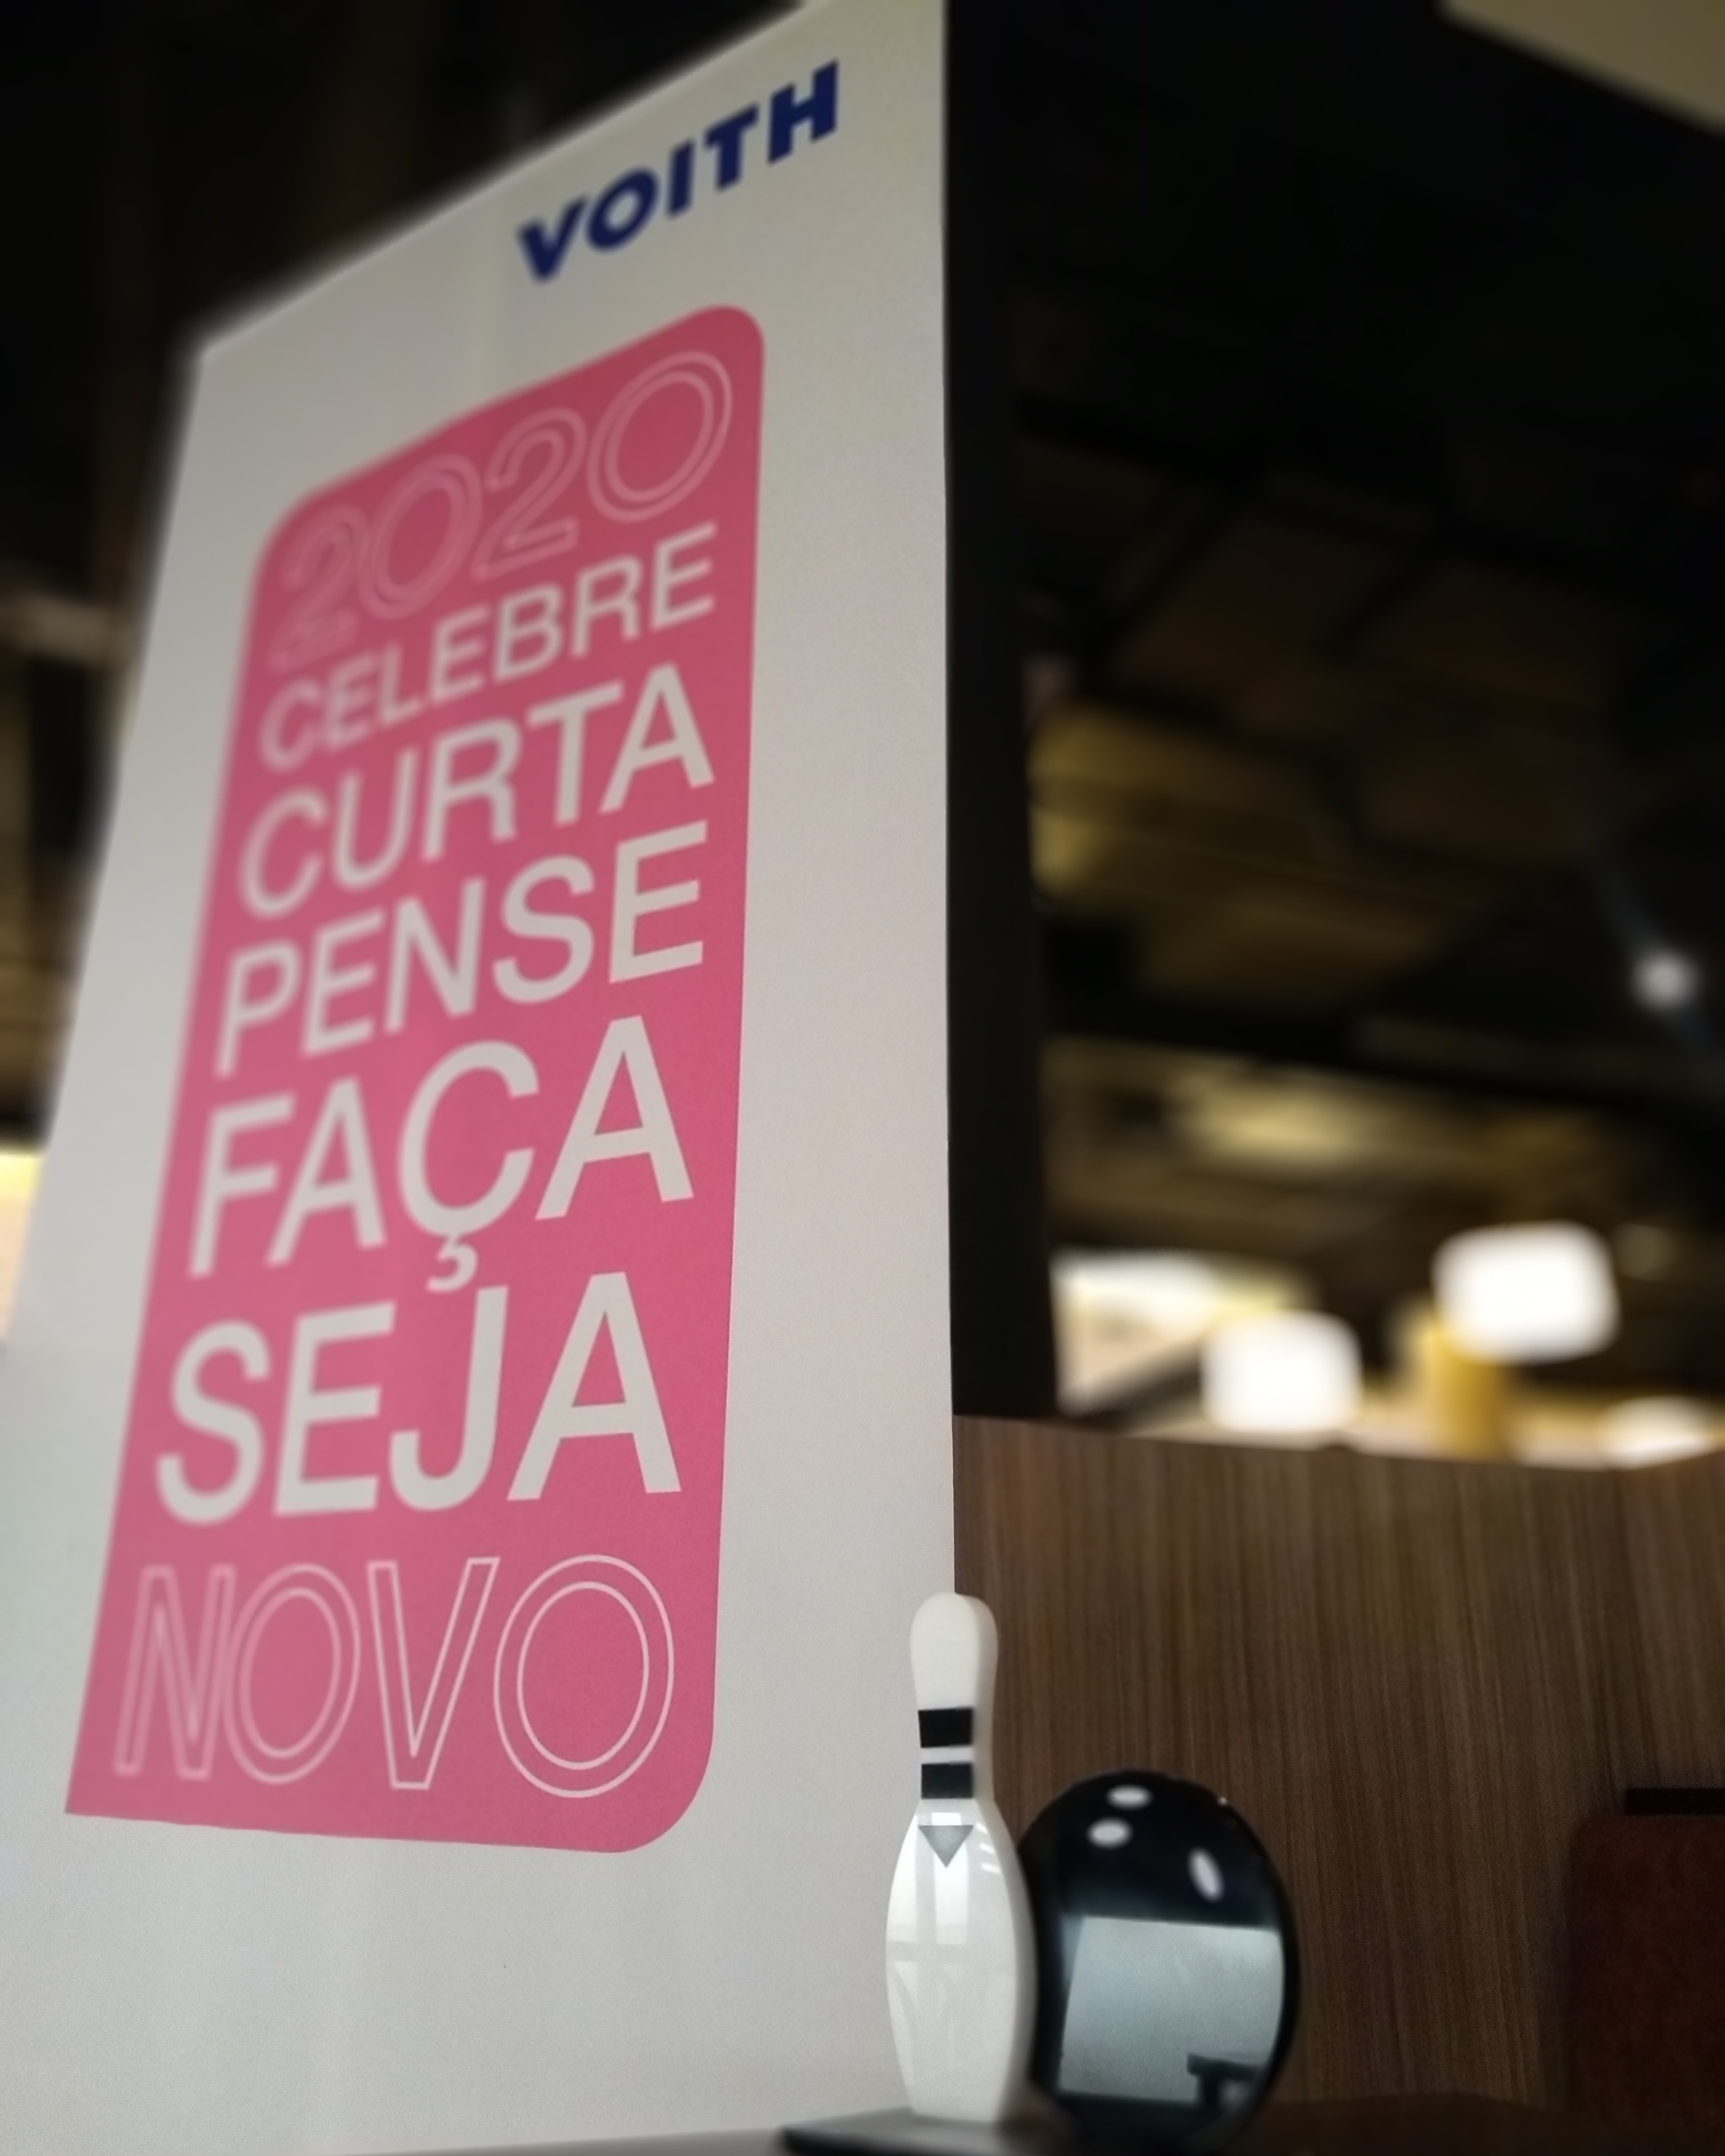 Festa da Voith Turbo